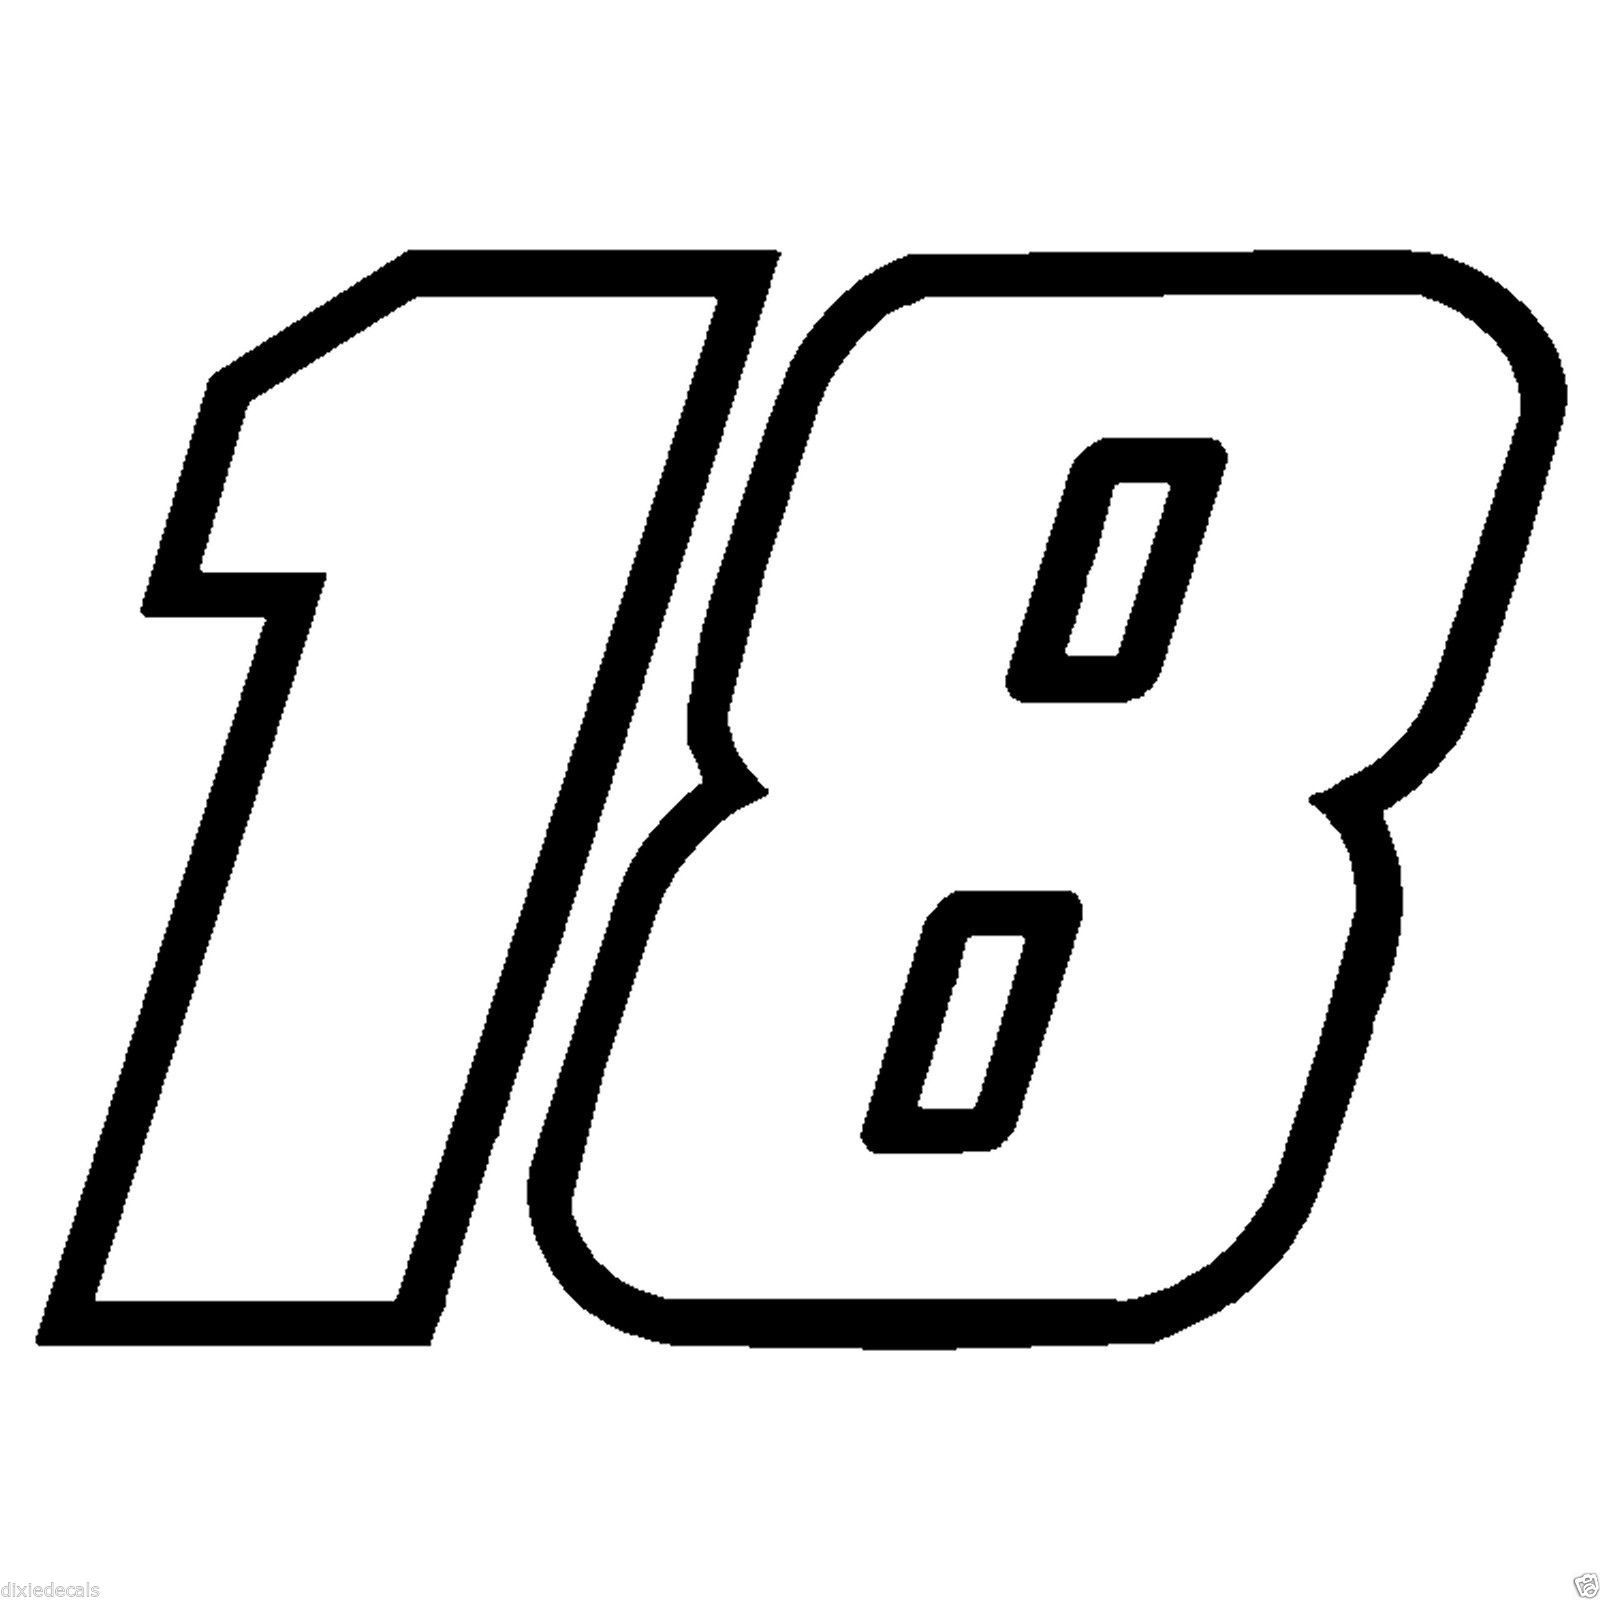 8 Kyle Busch Number 18 Window Decals Vinyl And 50 Similar